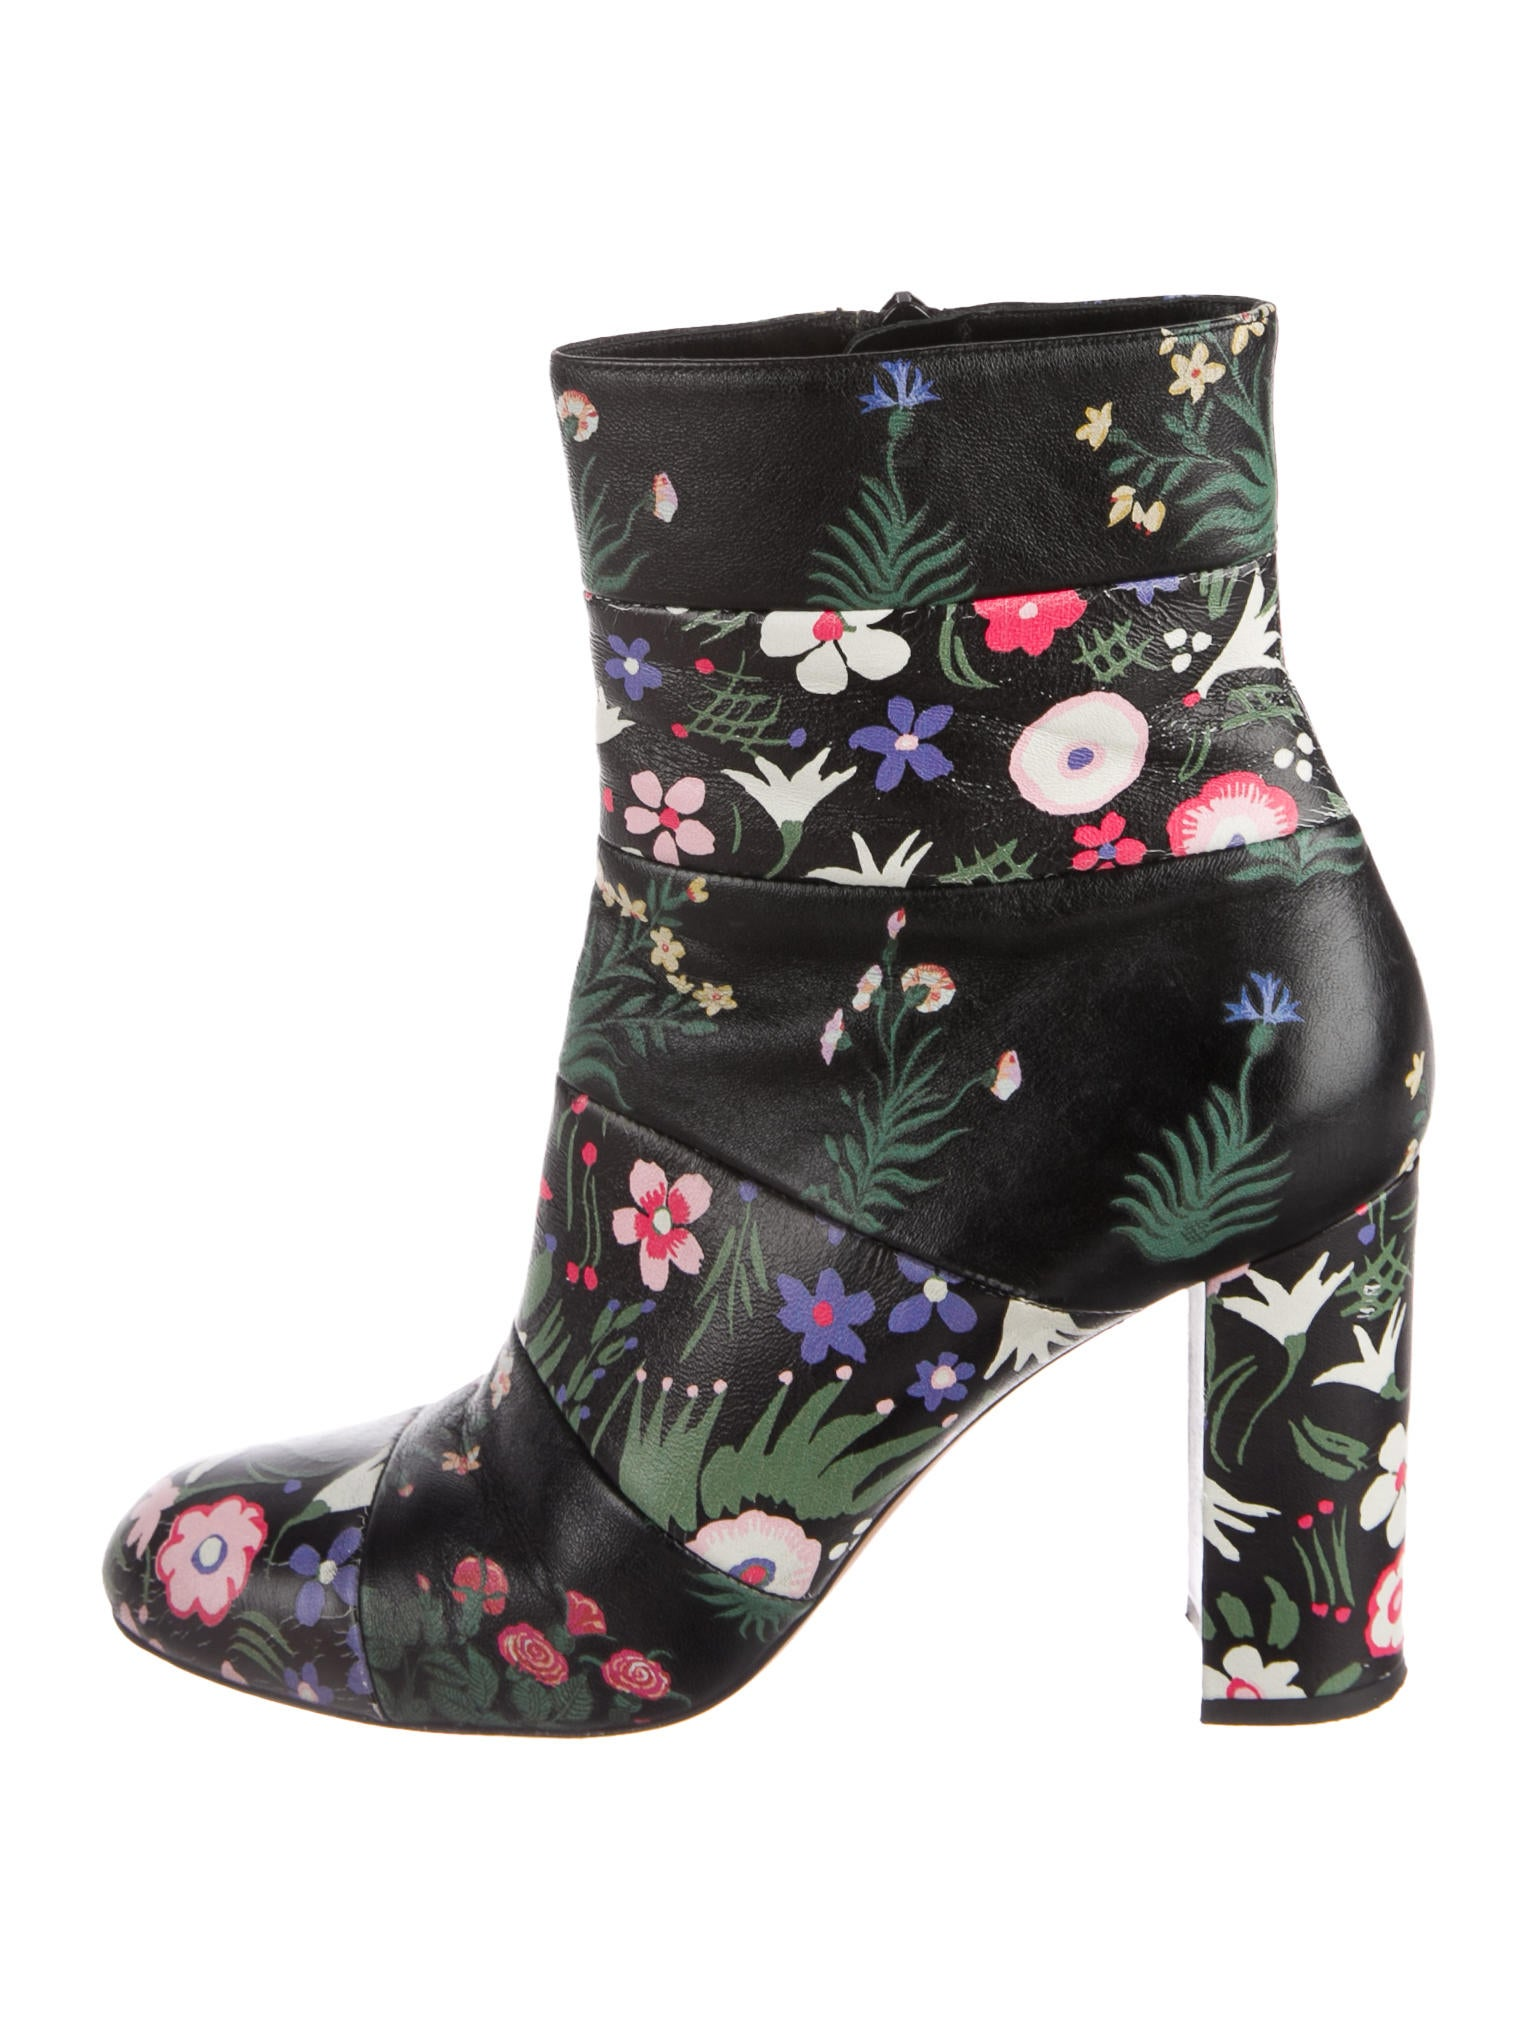 Valentino Spring Garden Leather Ankle Boots clearance footlocker 0XX4rcLO